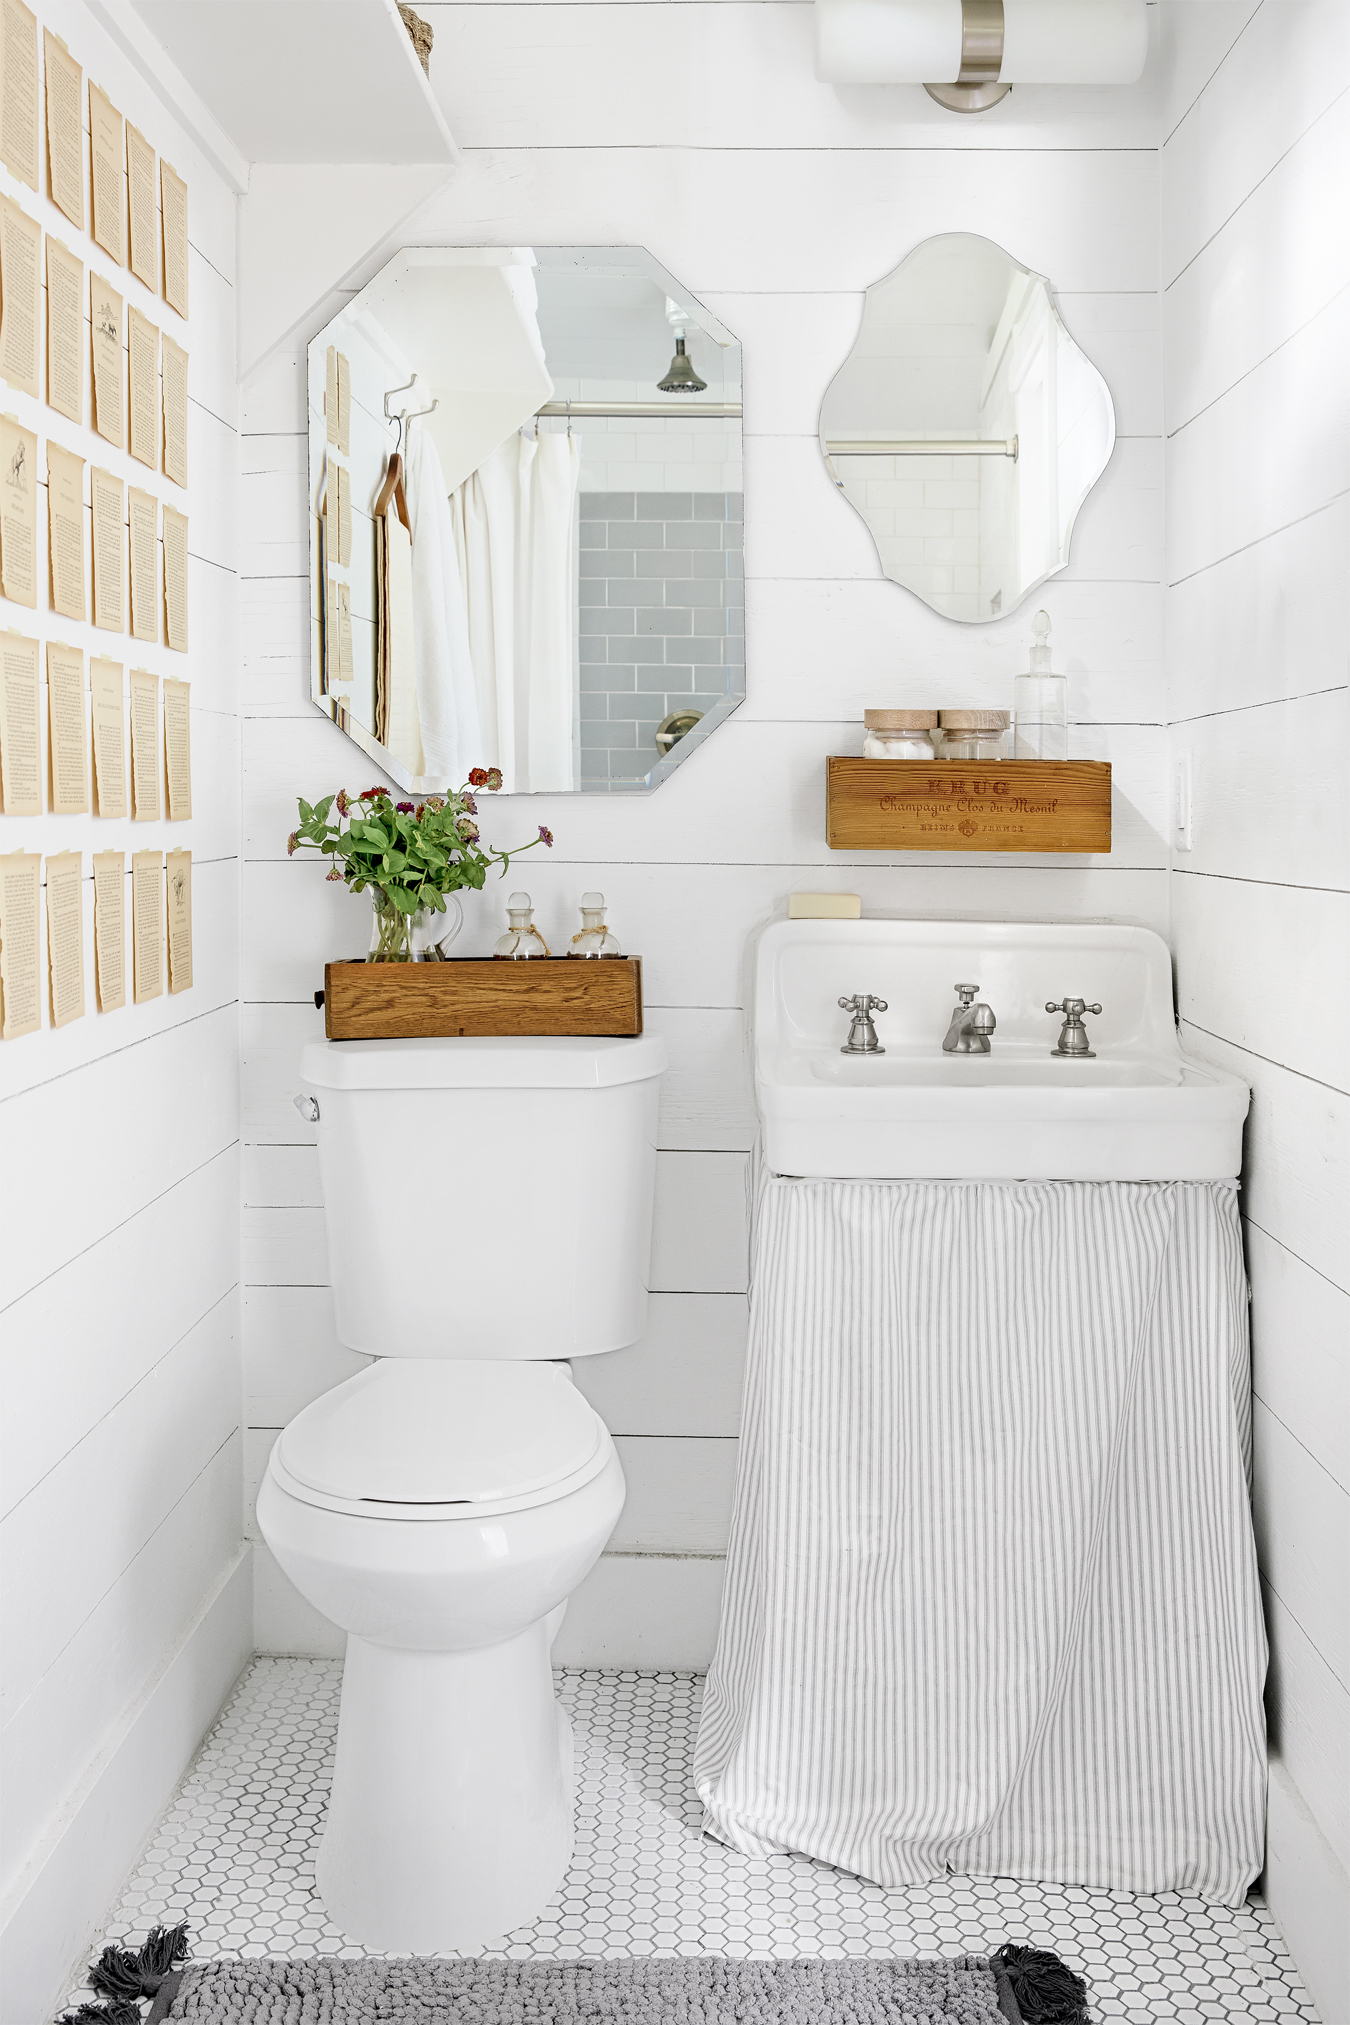 27 White Bathroom Ideas - Decorating with White for Bathrooms on White Bathroom Design Ideas  id=37028